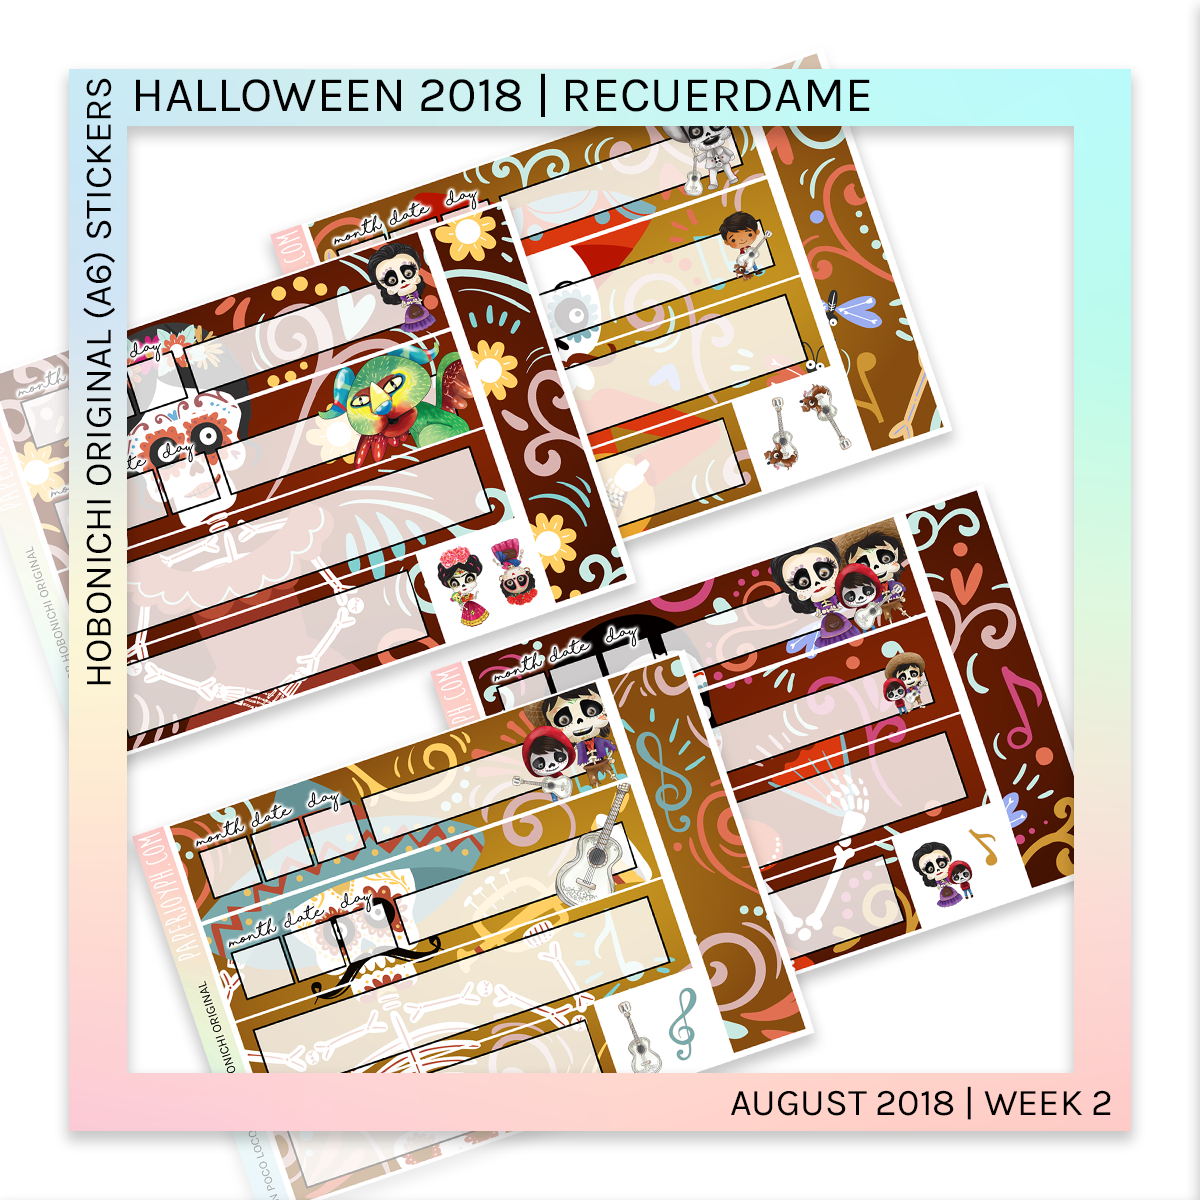 HOBONICHI ORIGINAL (A6) | Halloween 2018 Mega Bundle